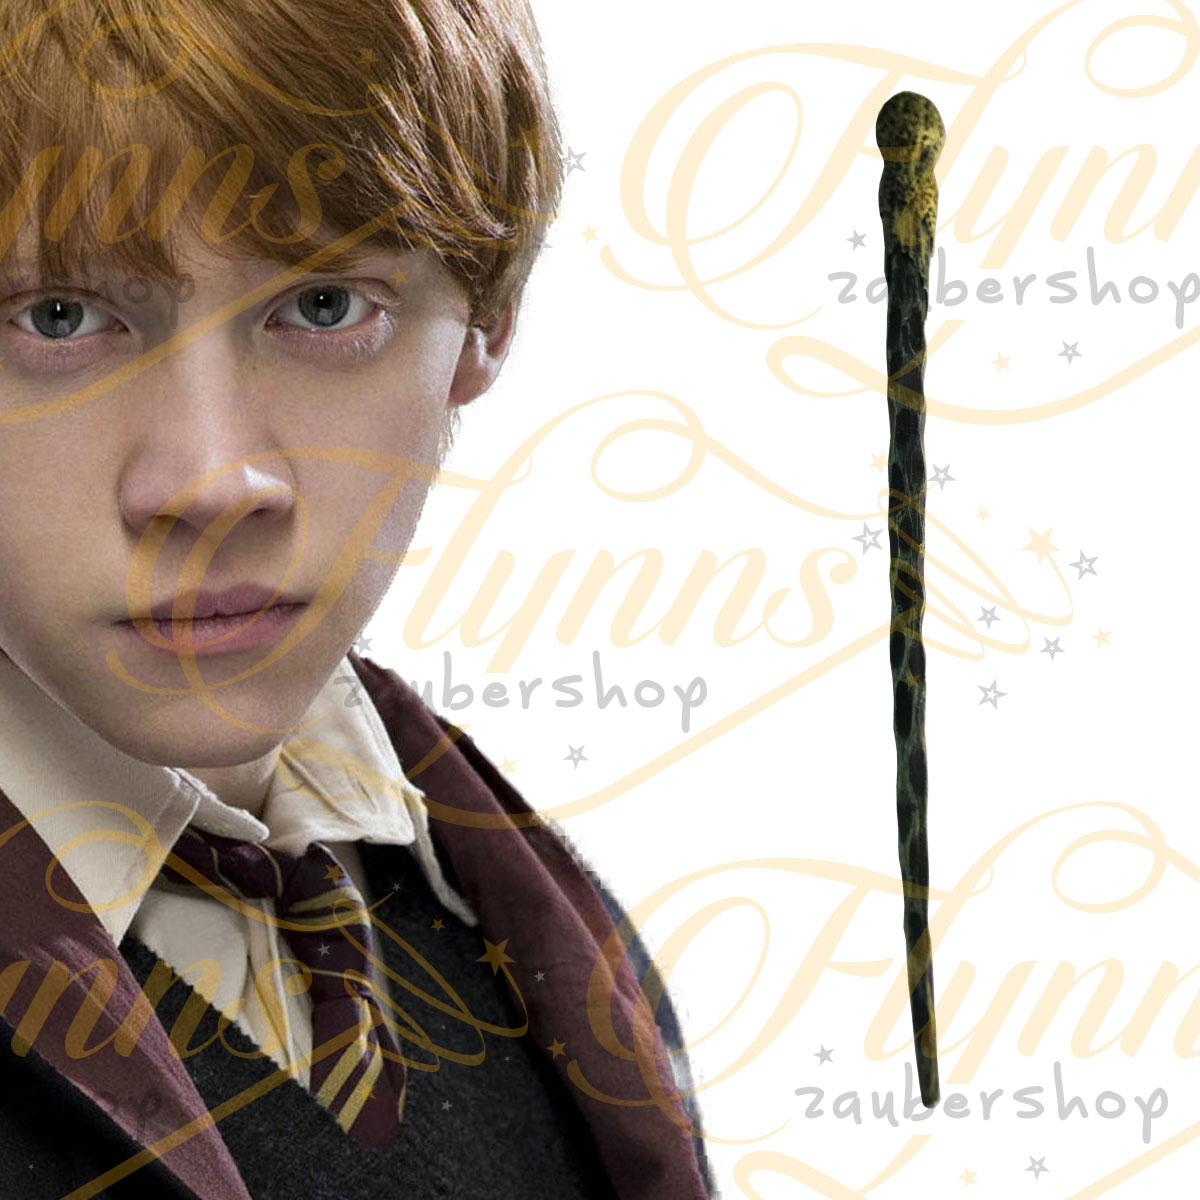 Ron Weasley | Harry Potter | Flynns Zaubershop